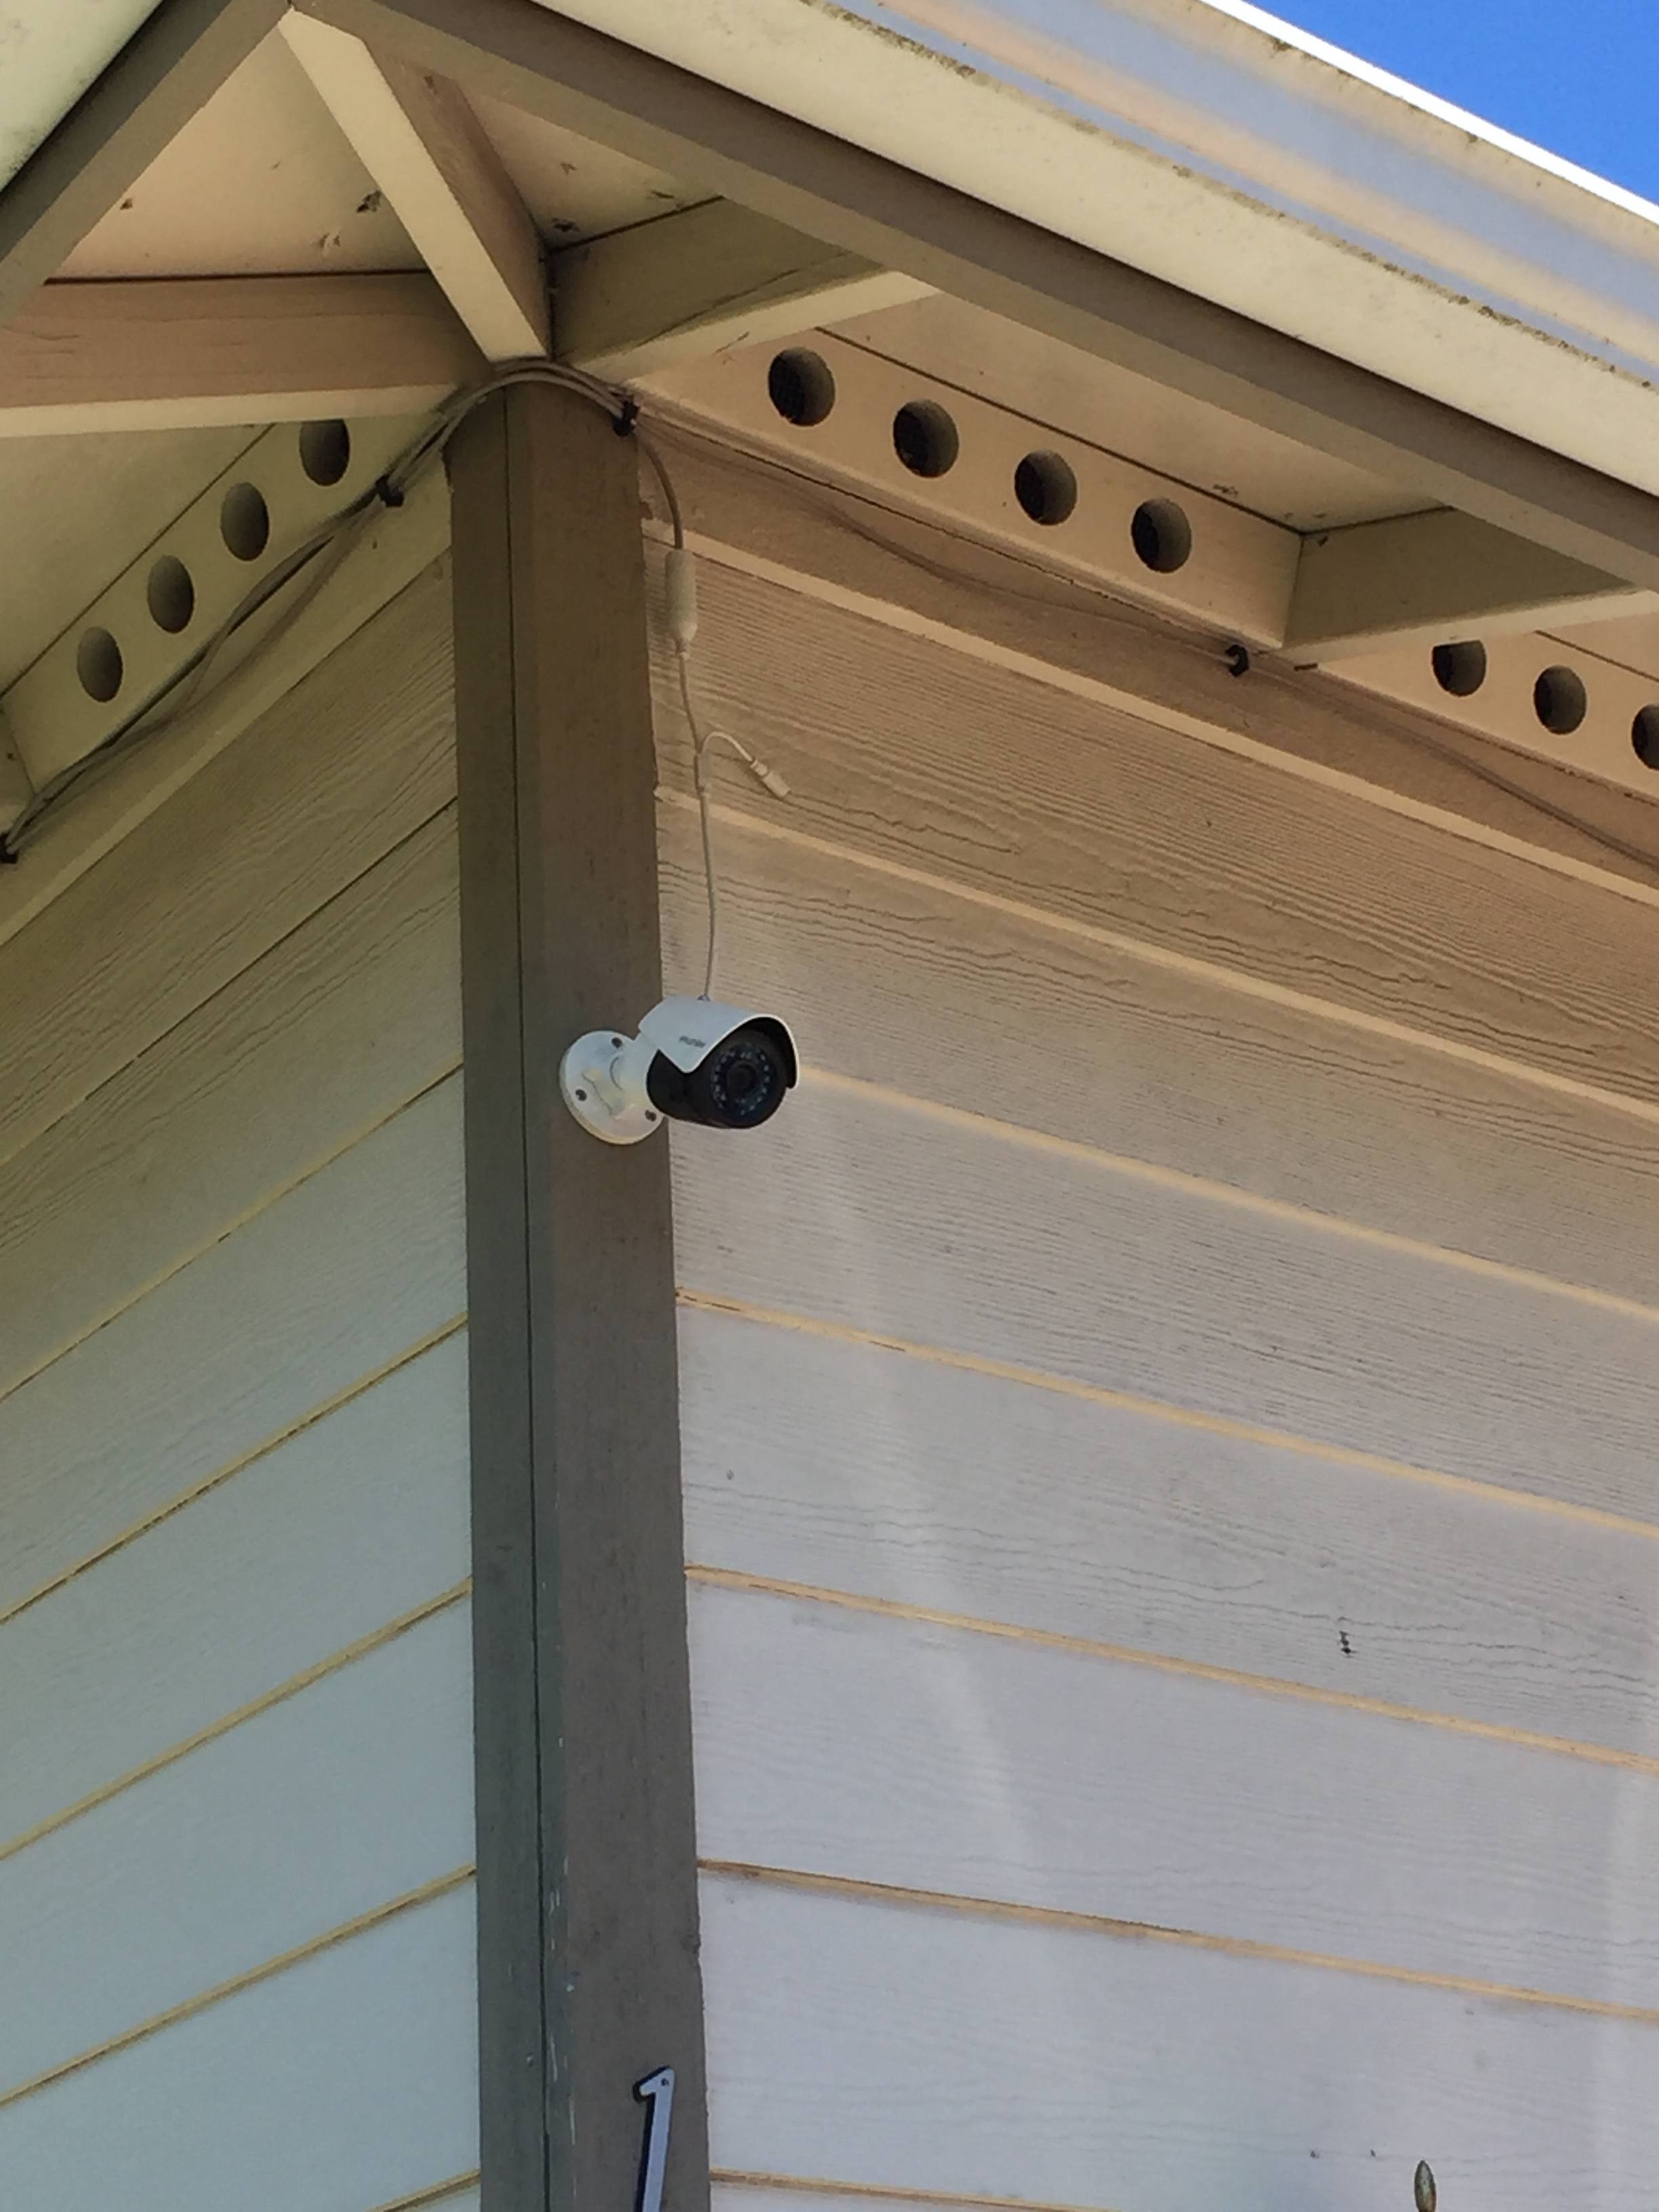 Camera Security Best Diy